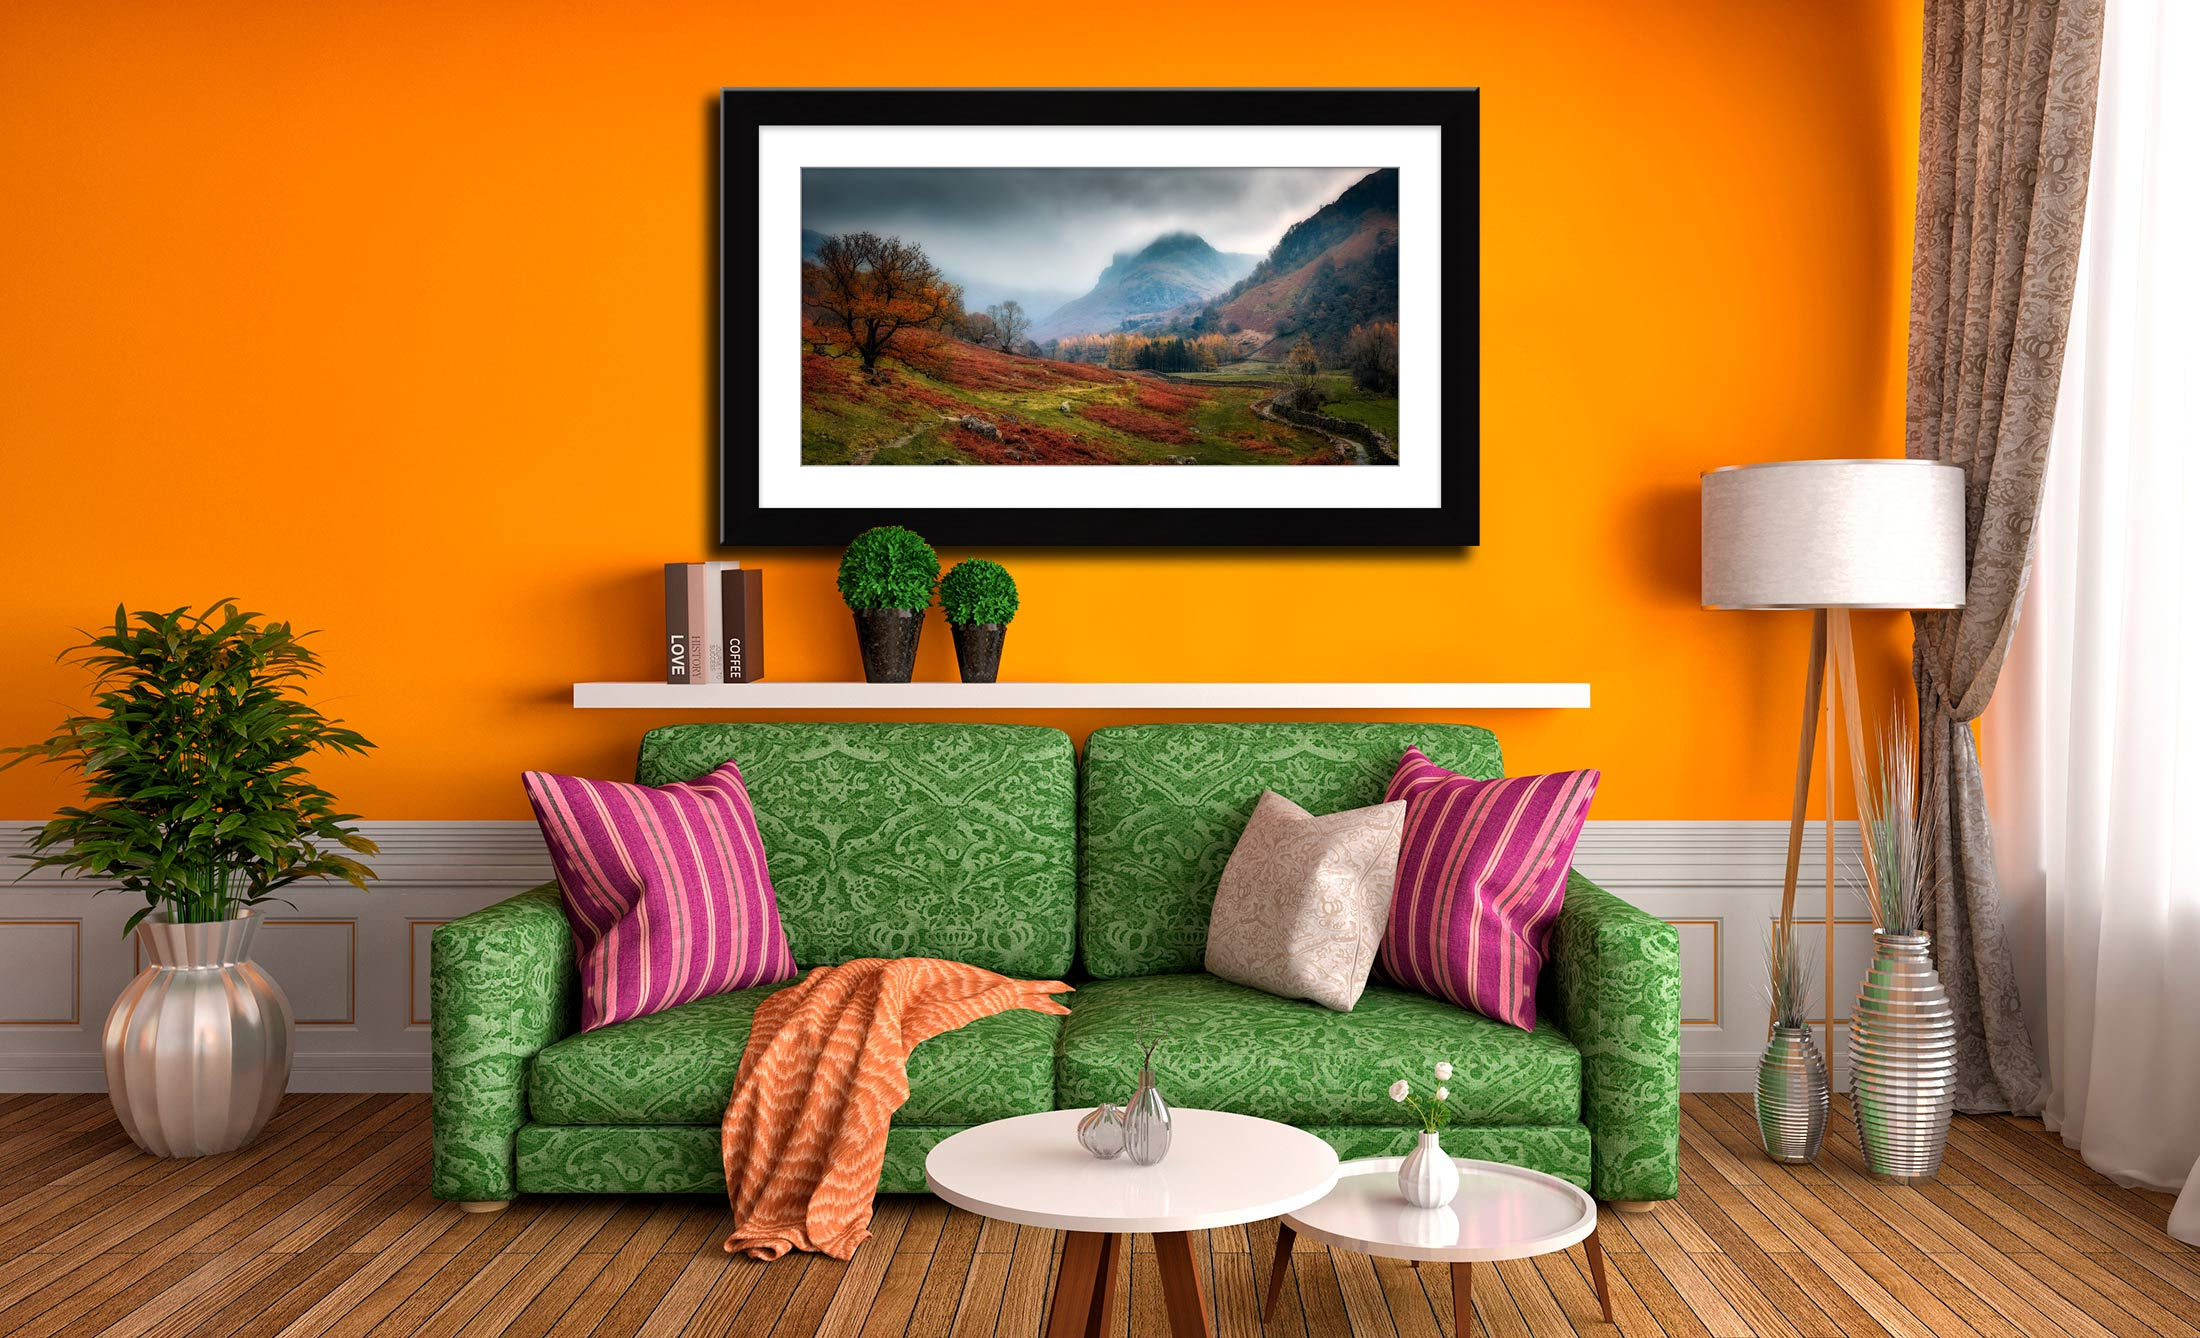 Dark Autumn at Eagle Crag - Framed Print with Mount on Wall